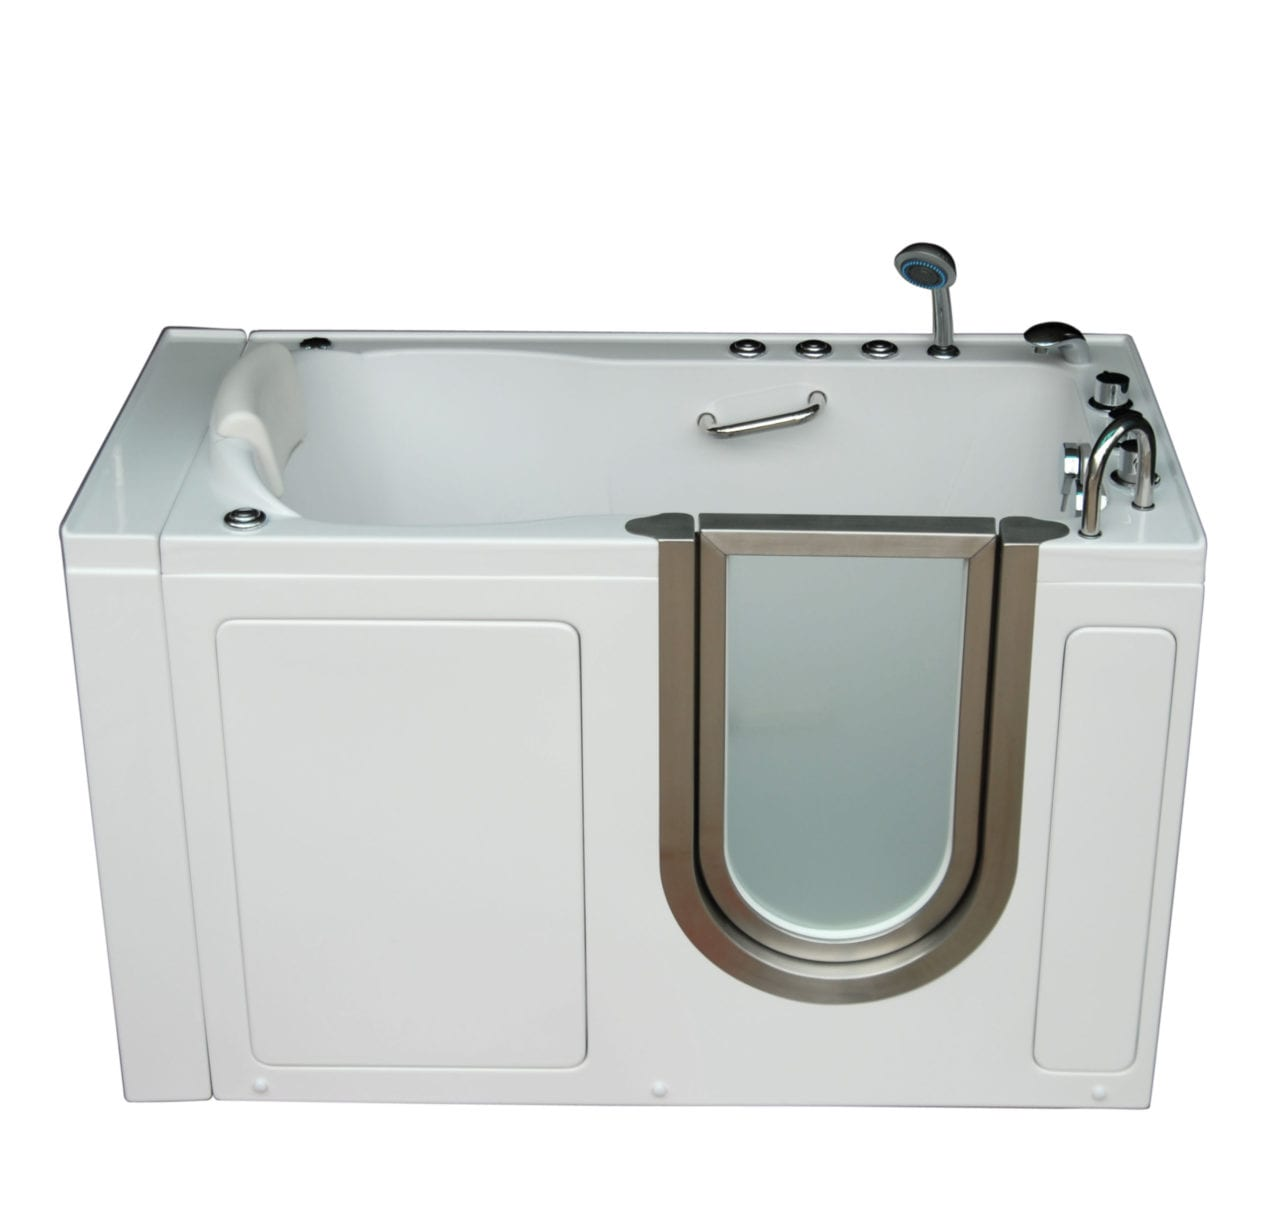 what do walk-in tubs cost